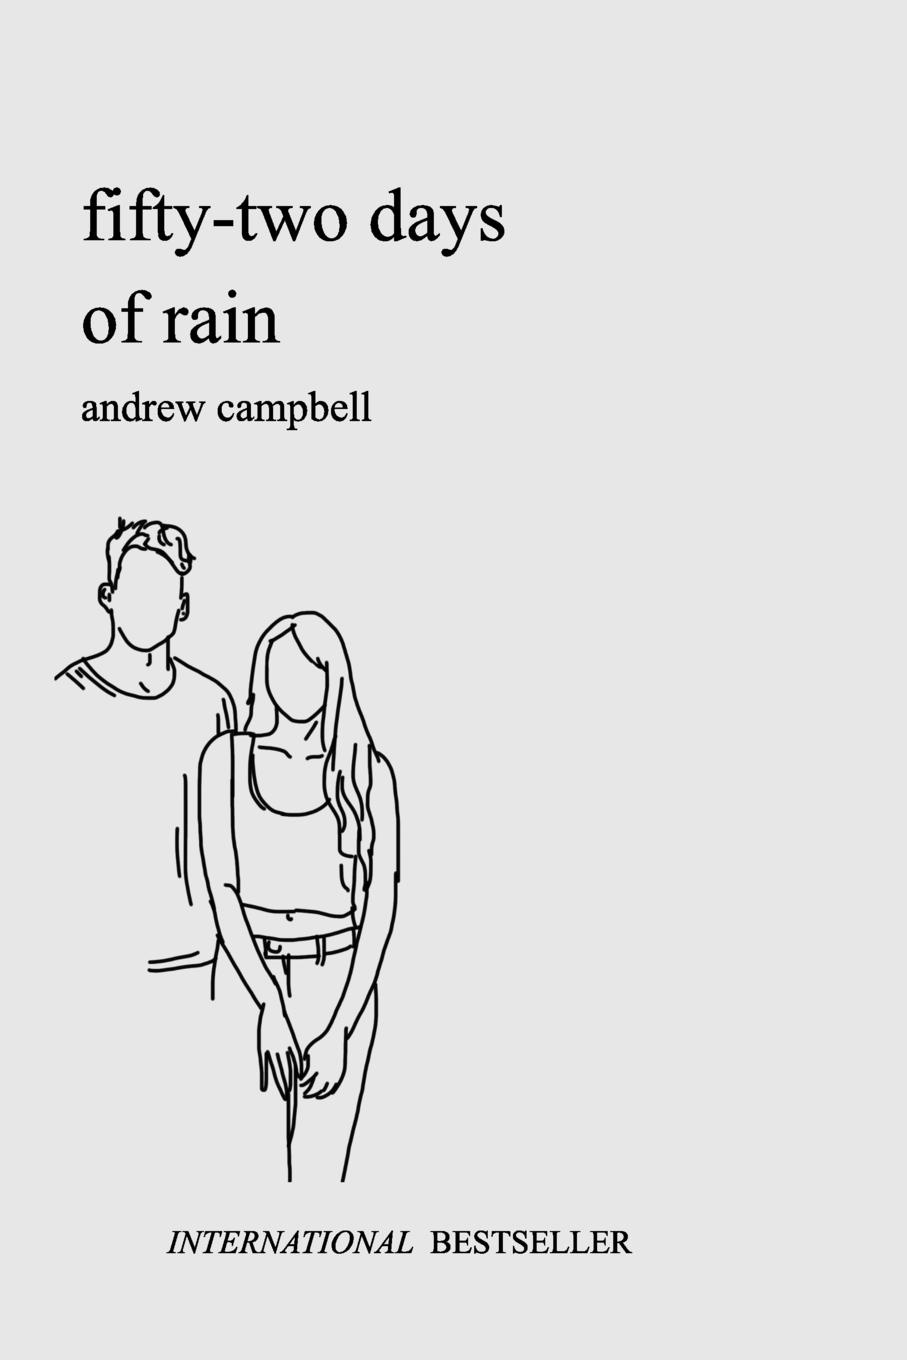 Andrew Campbell Fifty-Two Days of Rain fitness over fifty page 6